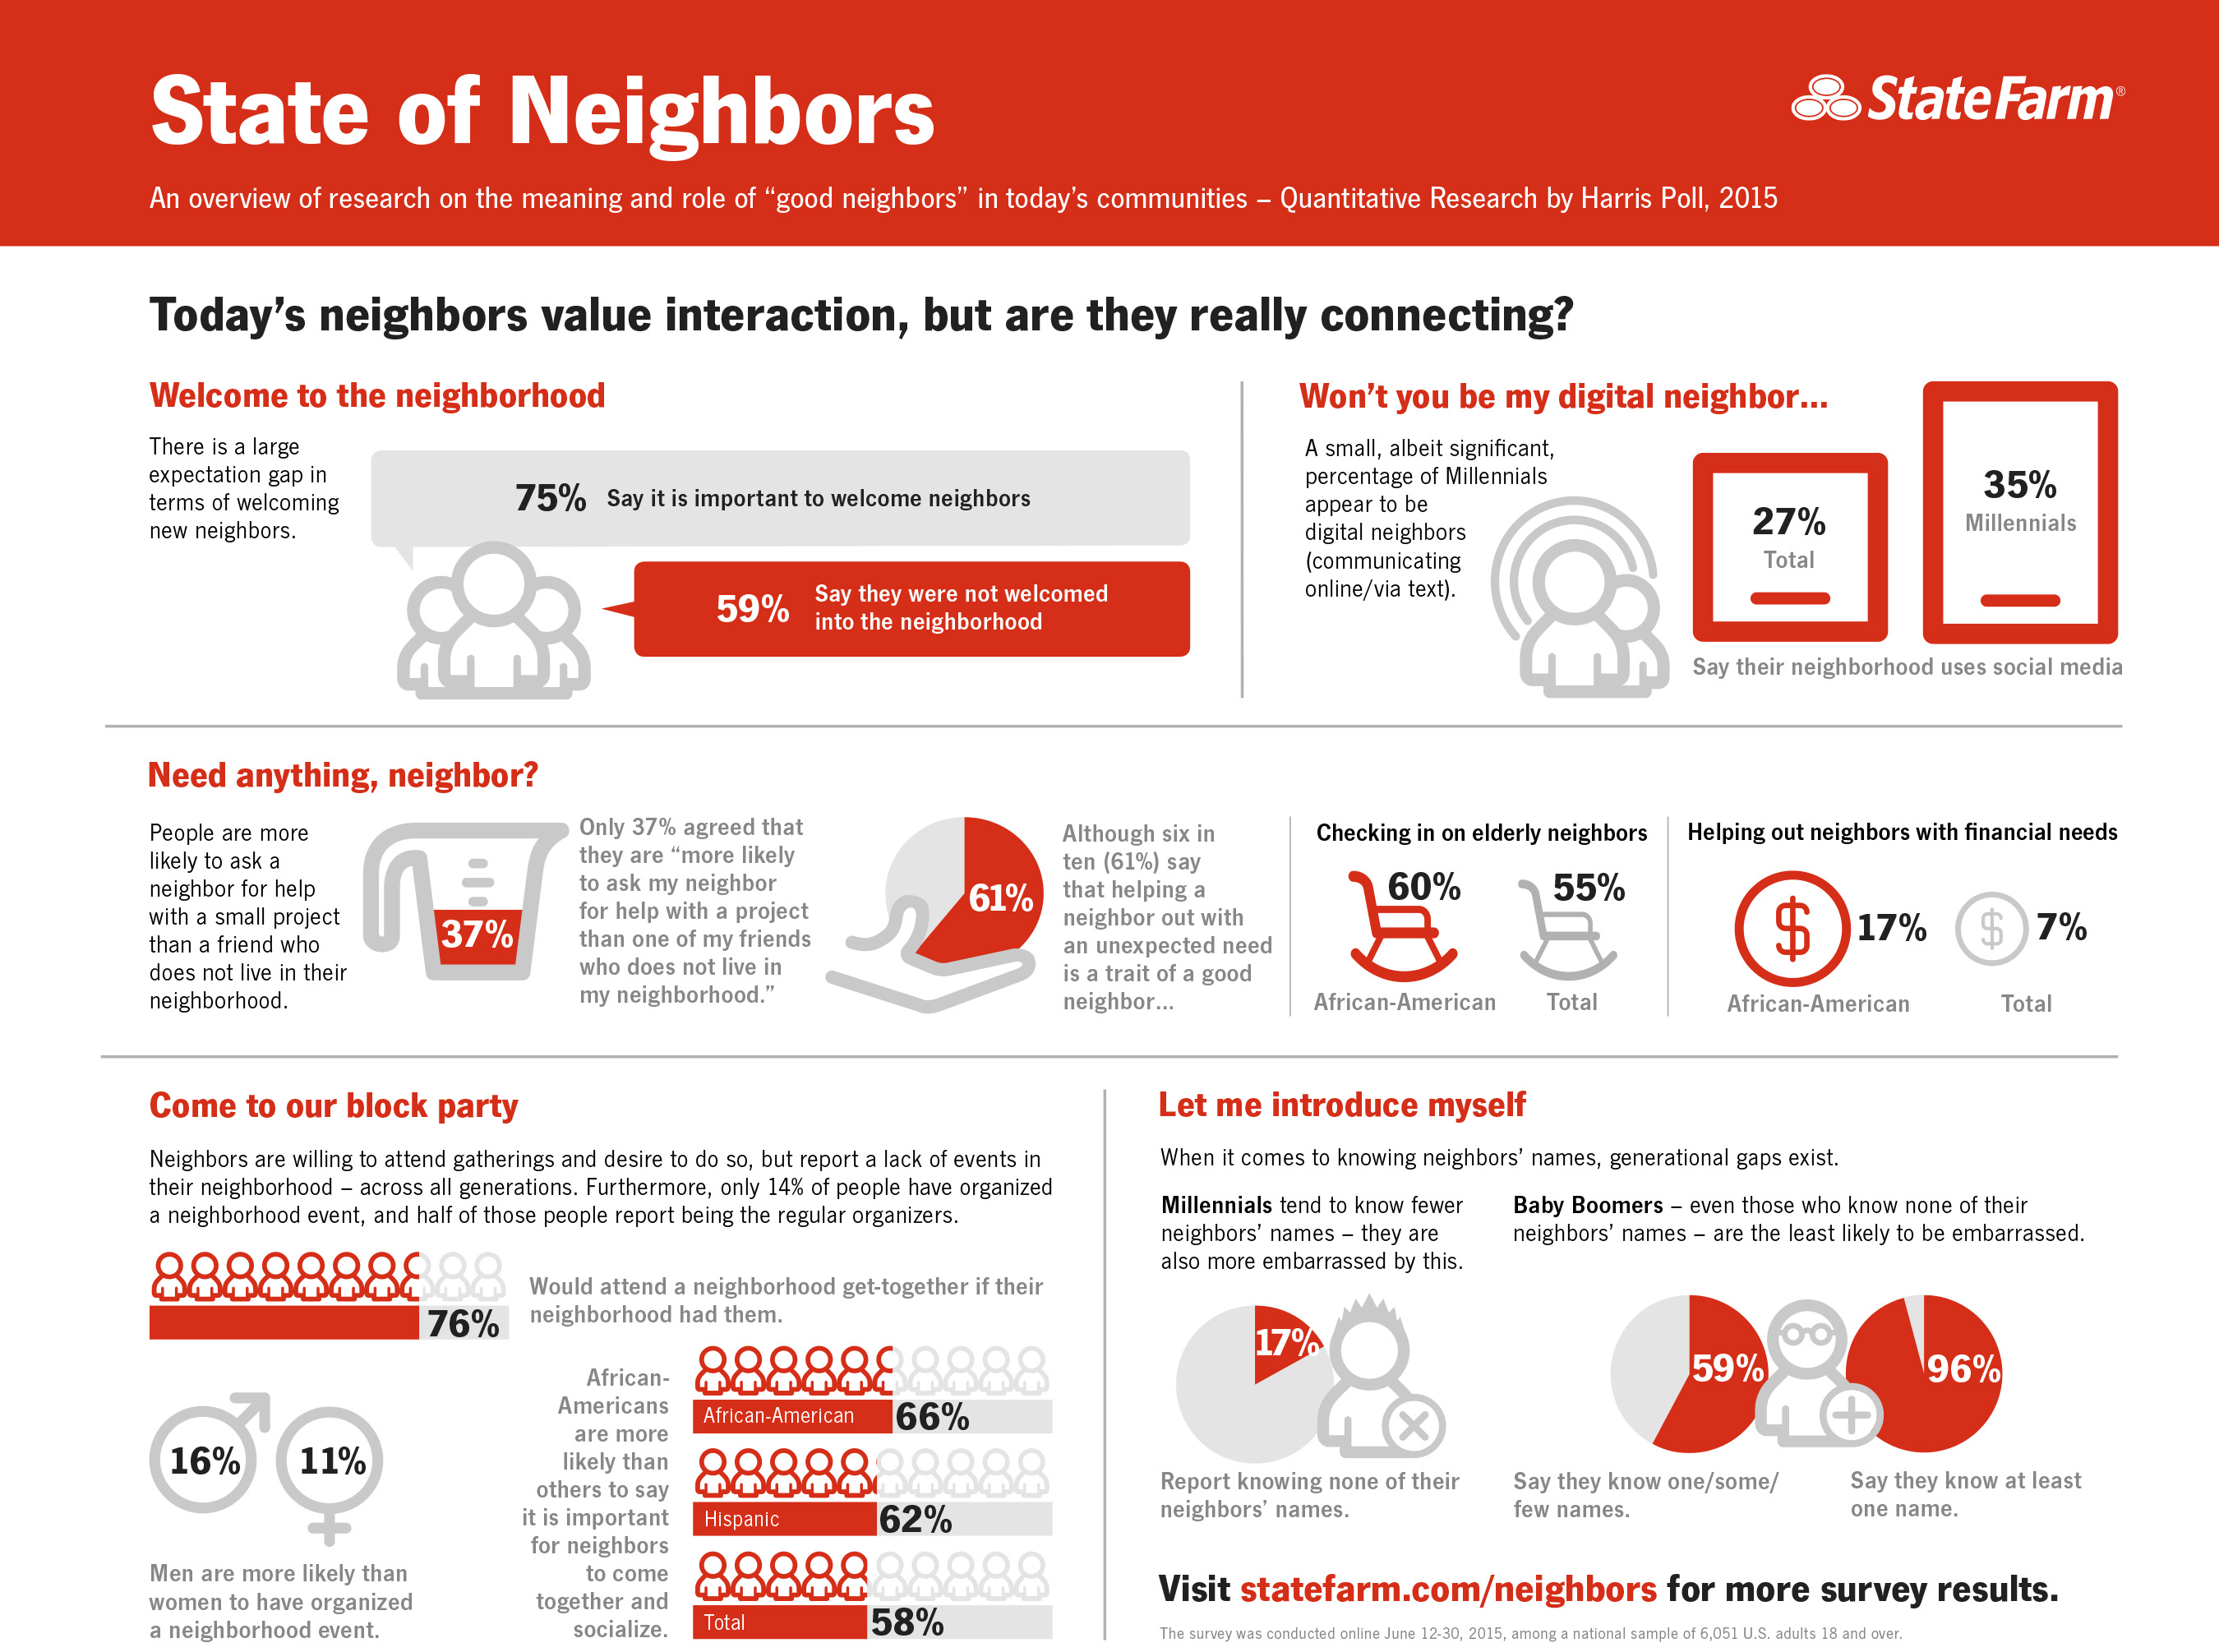 State Farm commissioned a State of Neighbors survey which yielded a variety of new and interesting facts, statistics and insights around what defines a good neighbor and how the U.S. currently perceives neighbor relationships.